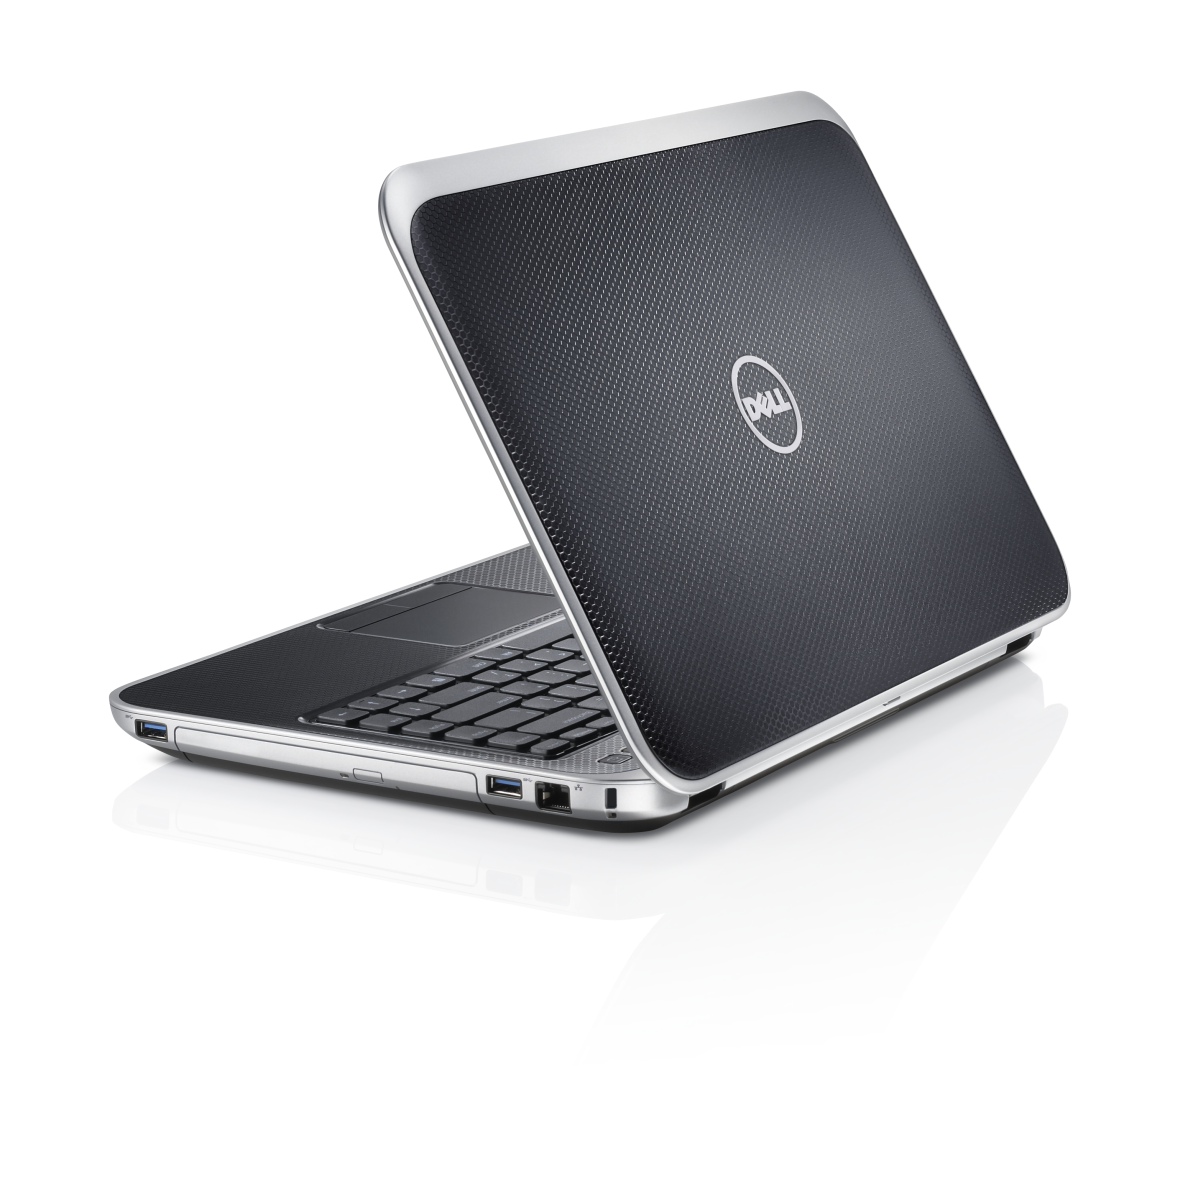 Dell Inspiron 15 - Buy it now.